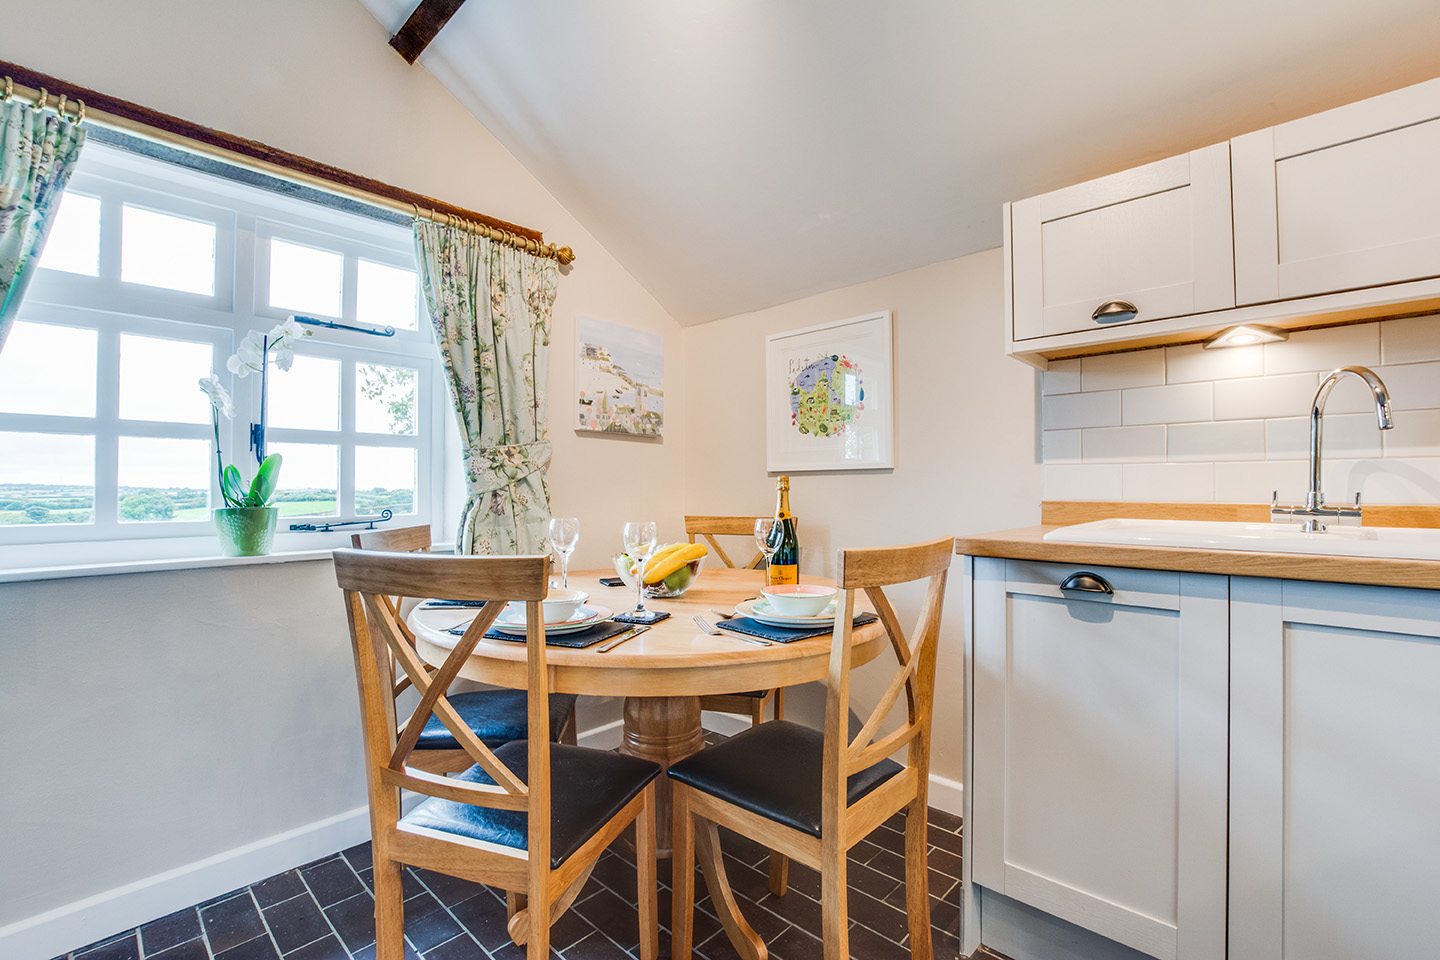 The dining area of Snappers luxury self catering converted barn holiday cottage at Penrose Burden in North Cornwall 02.jpg